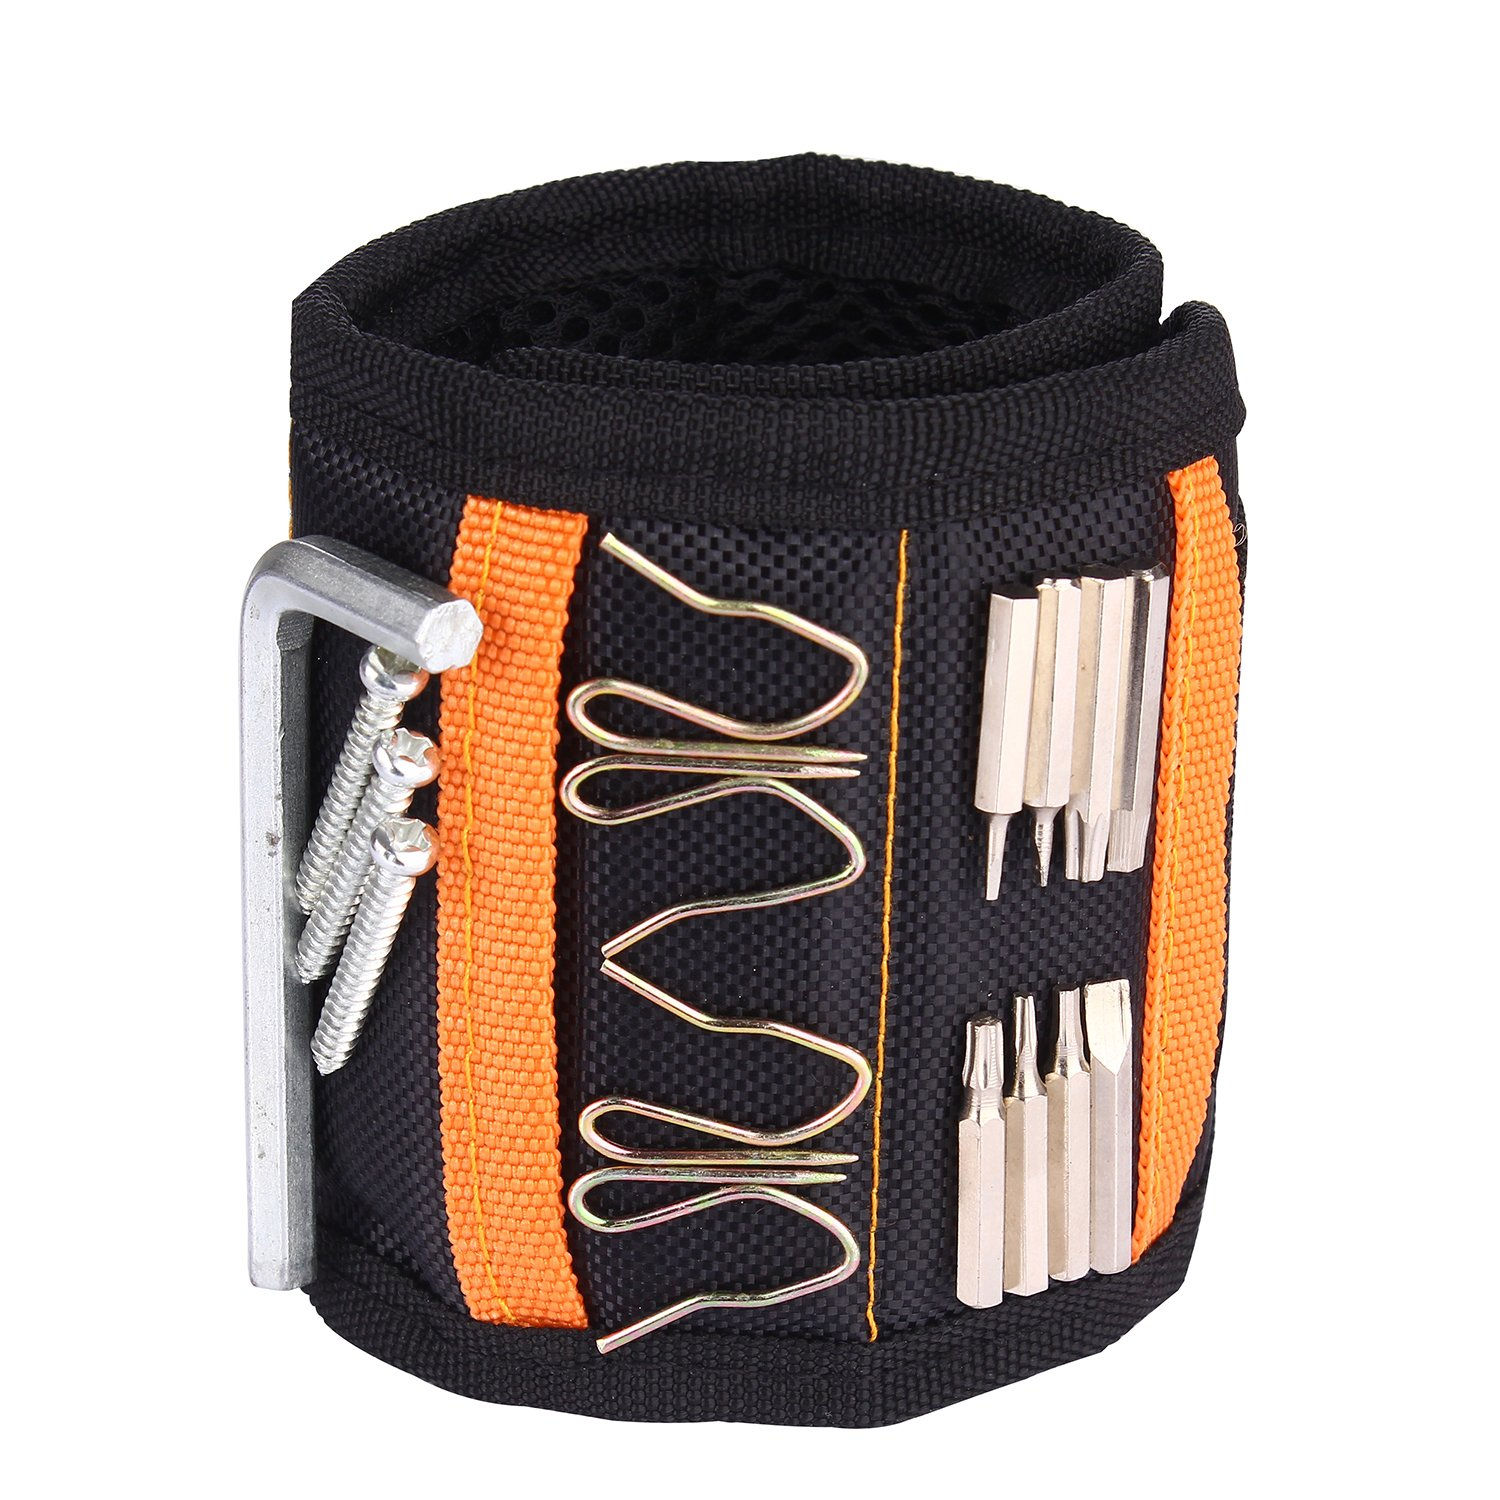 Magnetic Tool Wristband with 15 Super Strong Magnets DIY Handyman Wrist Band Adjustbable Strap Tools Belt for Holding Screws Nails, Drill, Bits, Black